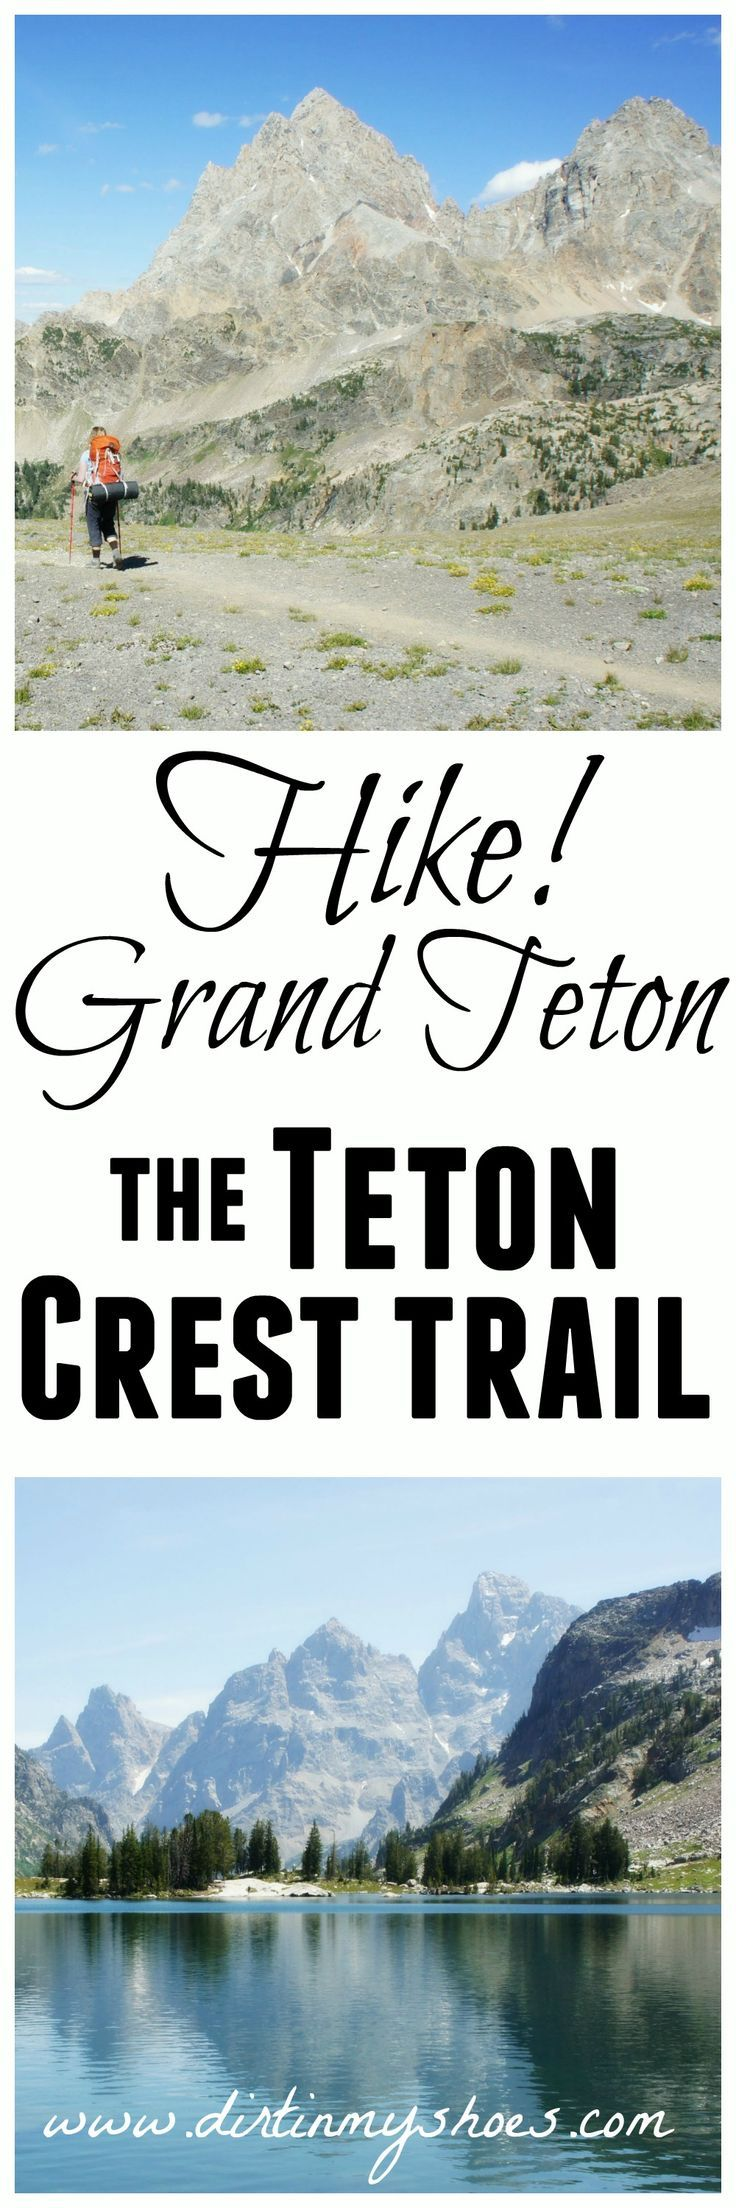 This spectacular hike along the Teton Crest Trail is the best way to see Grand Teton National Park!  You will LOVE this trail.  Tips written by a former park ranger!